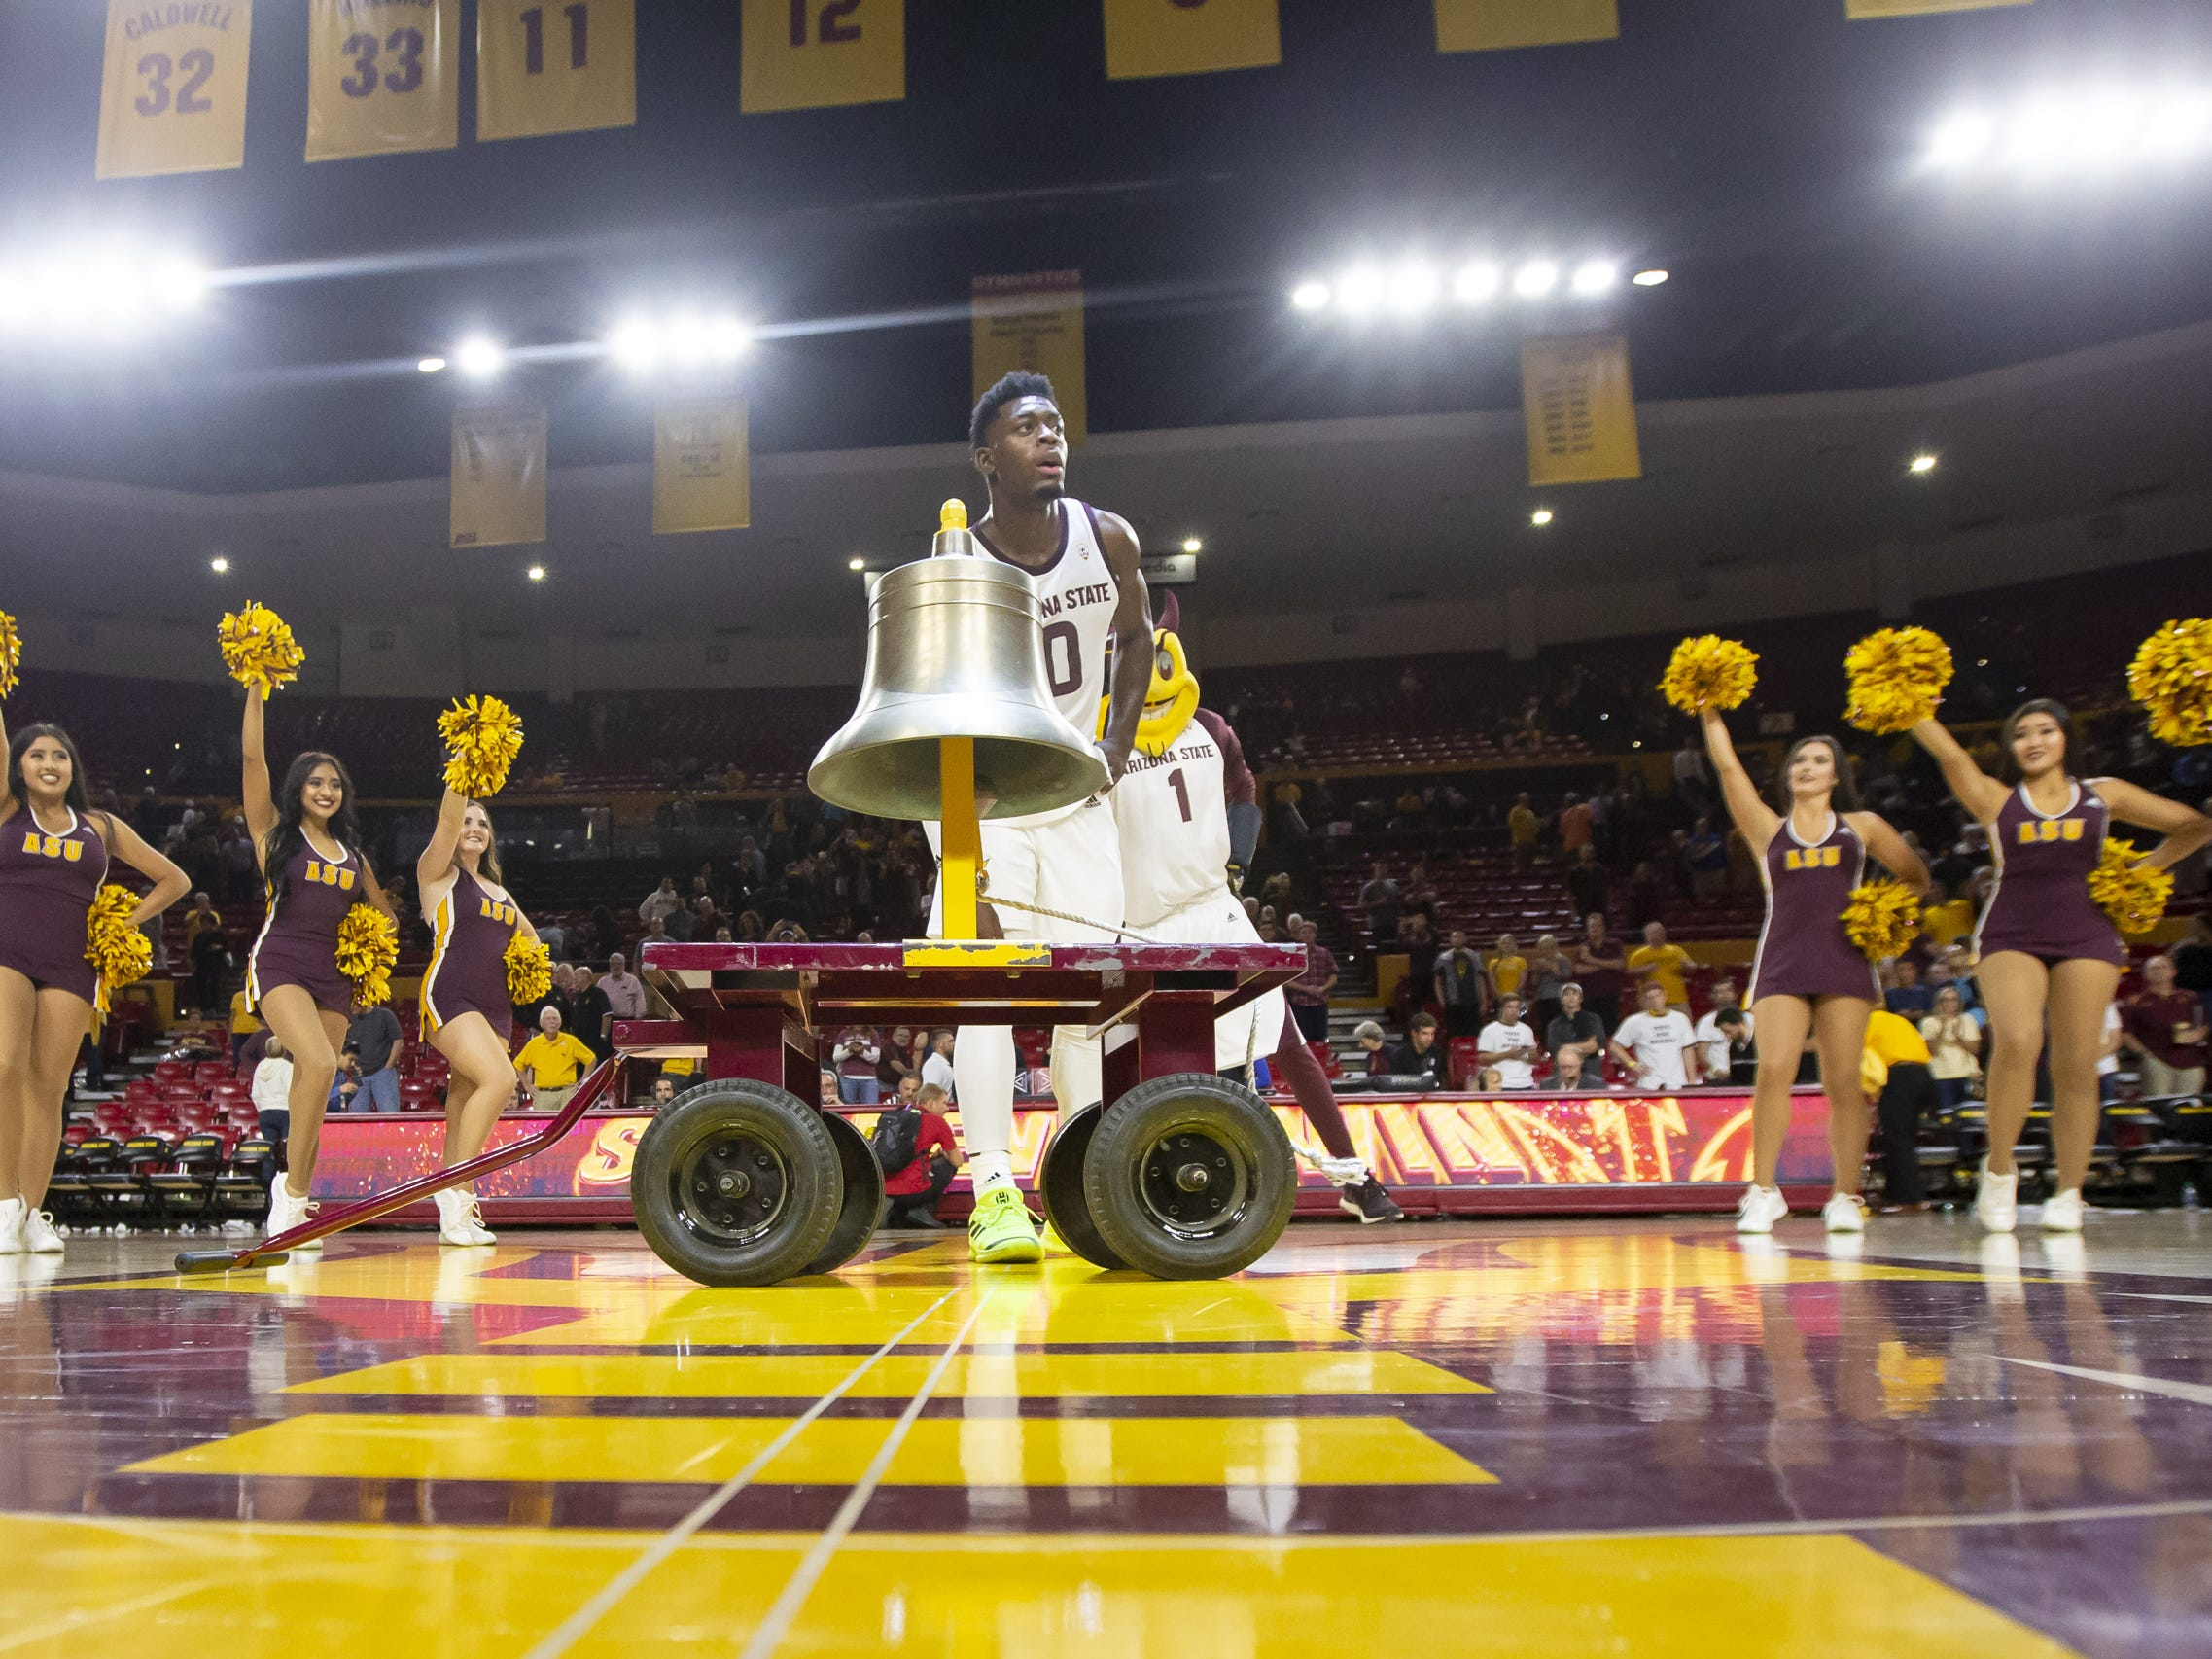 Guard Luguentz Dort (0) of the Arizona State Sun Devils rings the victory bell following Arizona State's double overtime win against the Cal State Fullerton Titans at Wells Fargo Arena on Tuesday, November 6, 2018 in Tempe, Arizona.